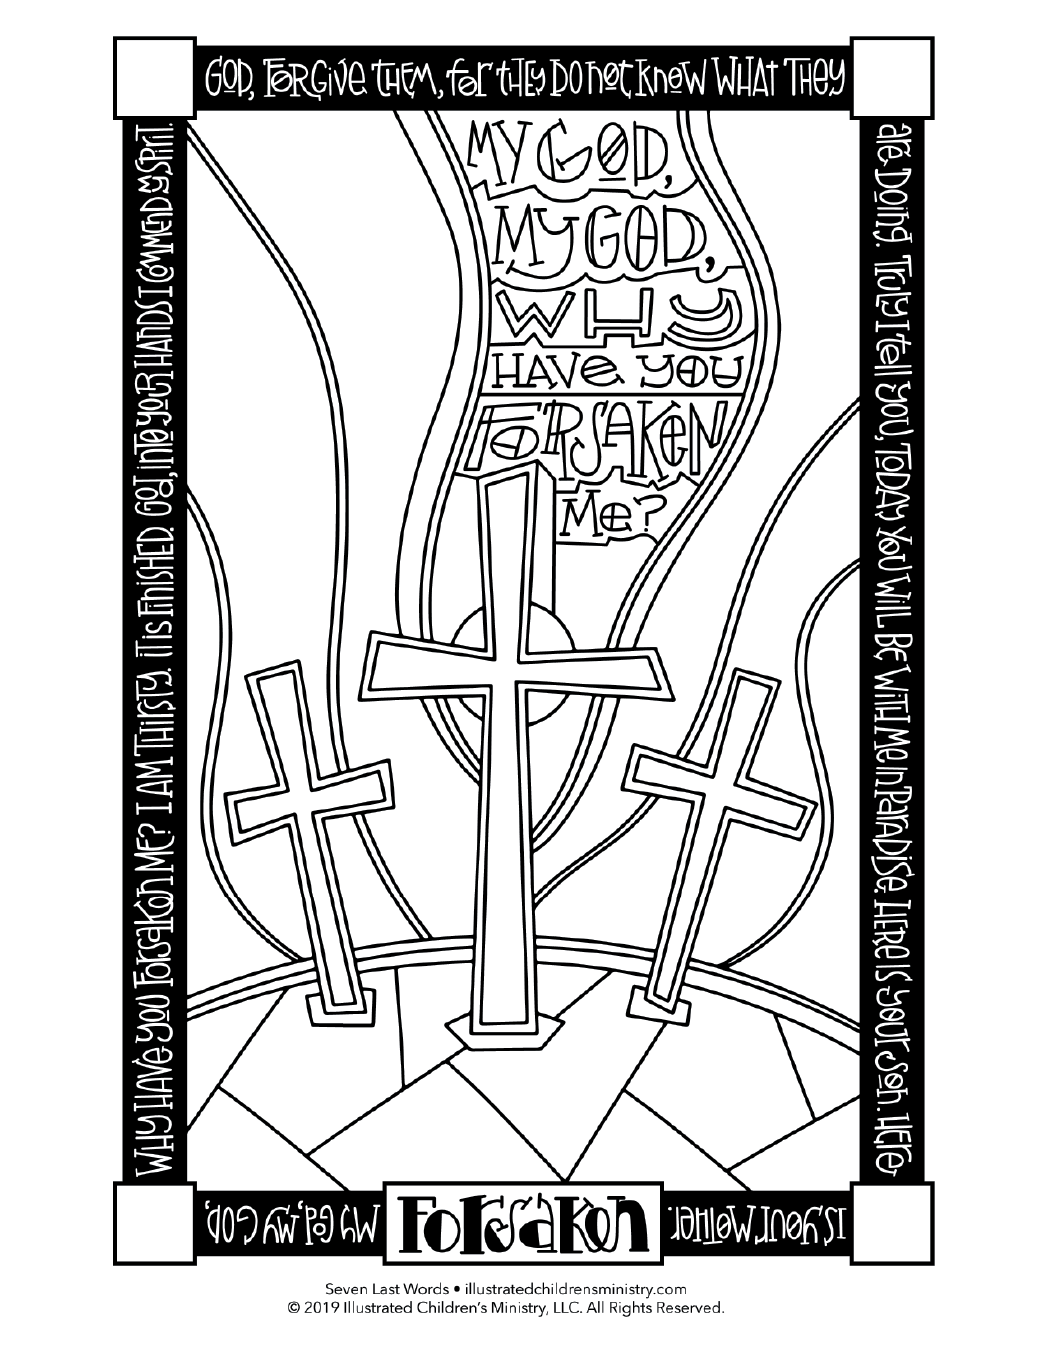 Seven Last Words coloring page simple - Forsaken